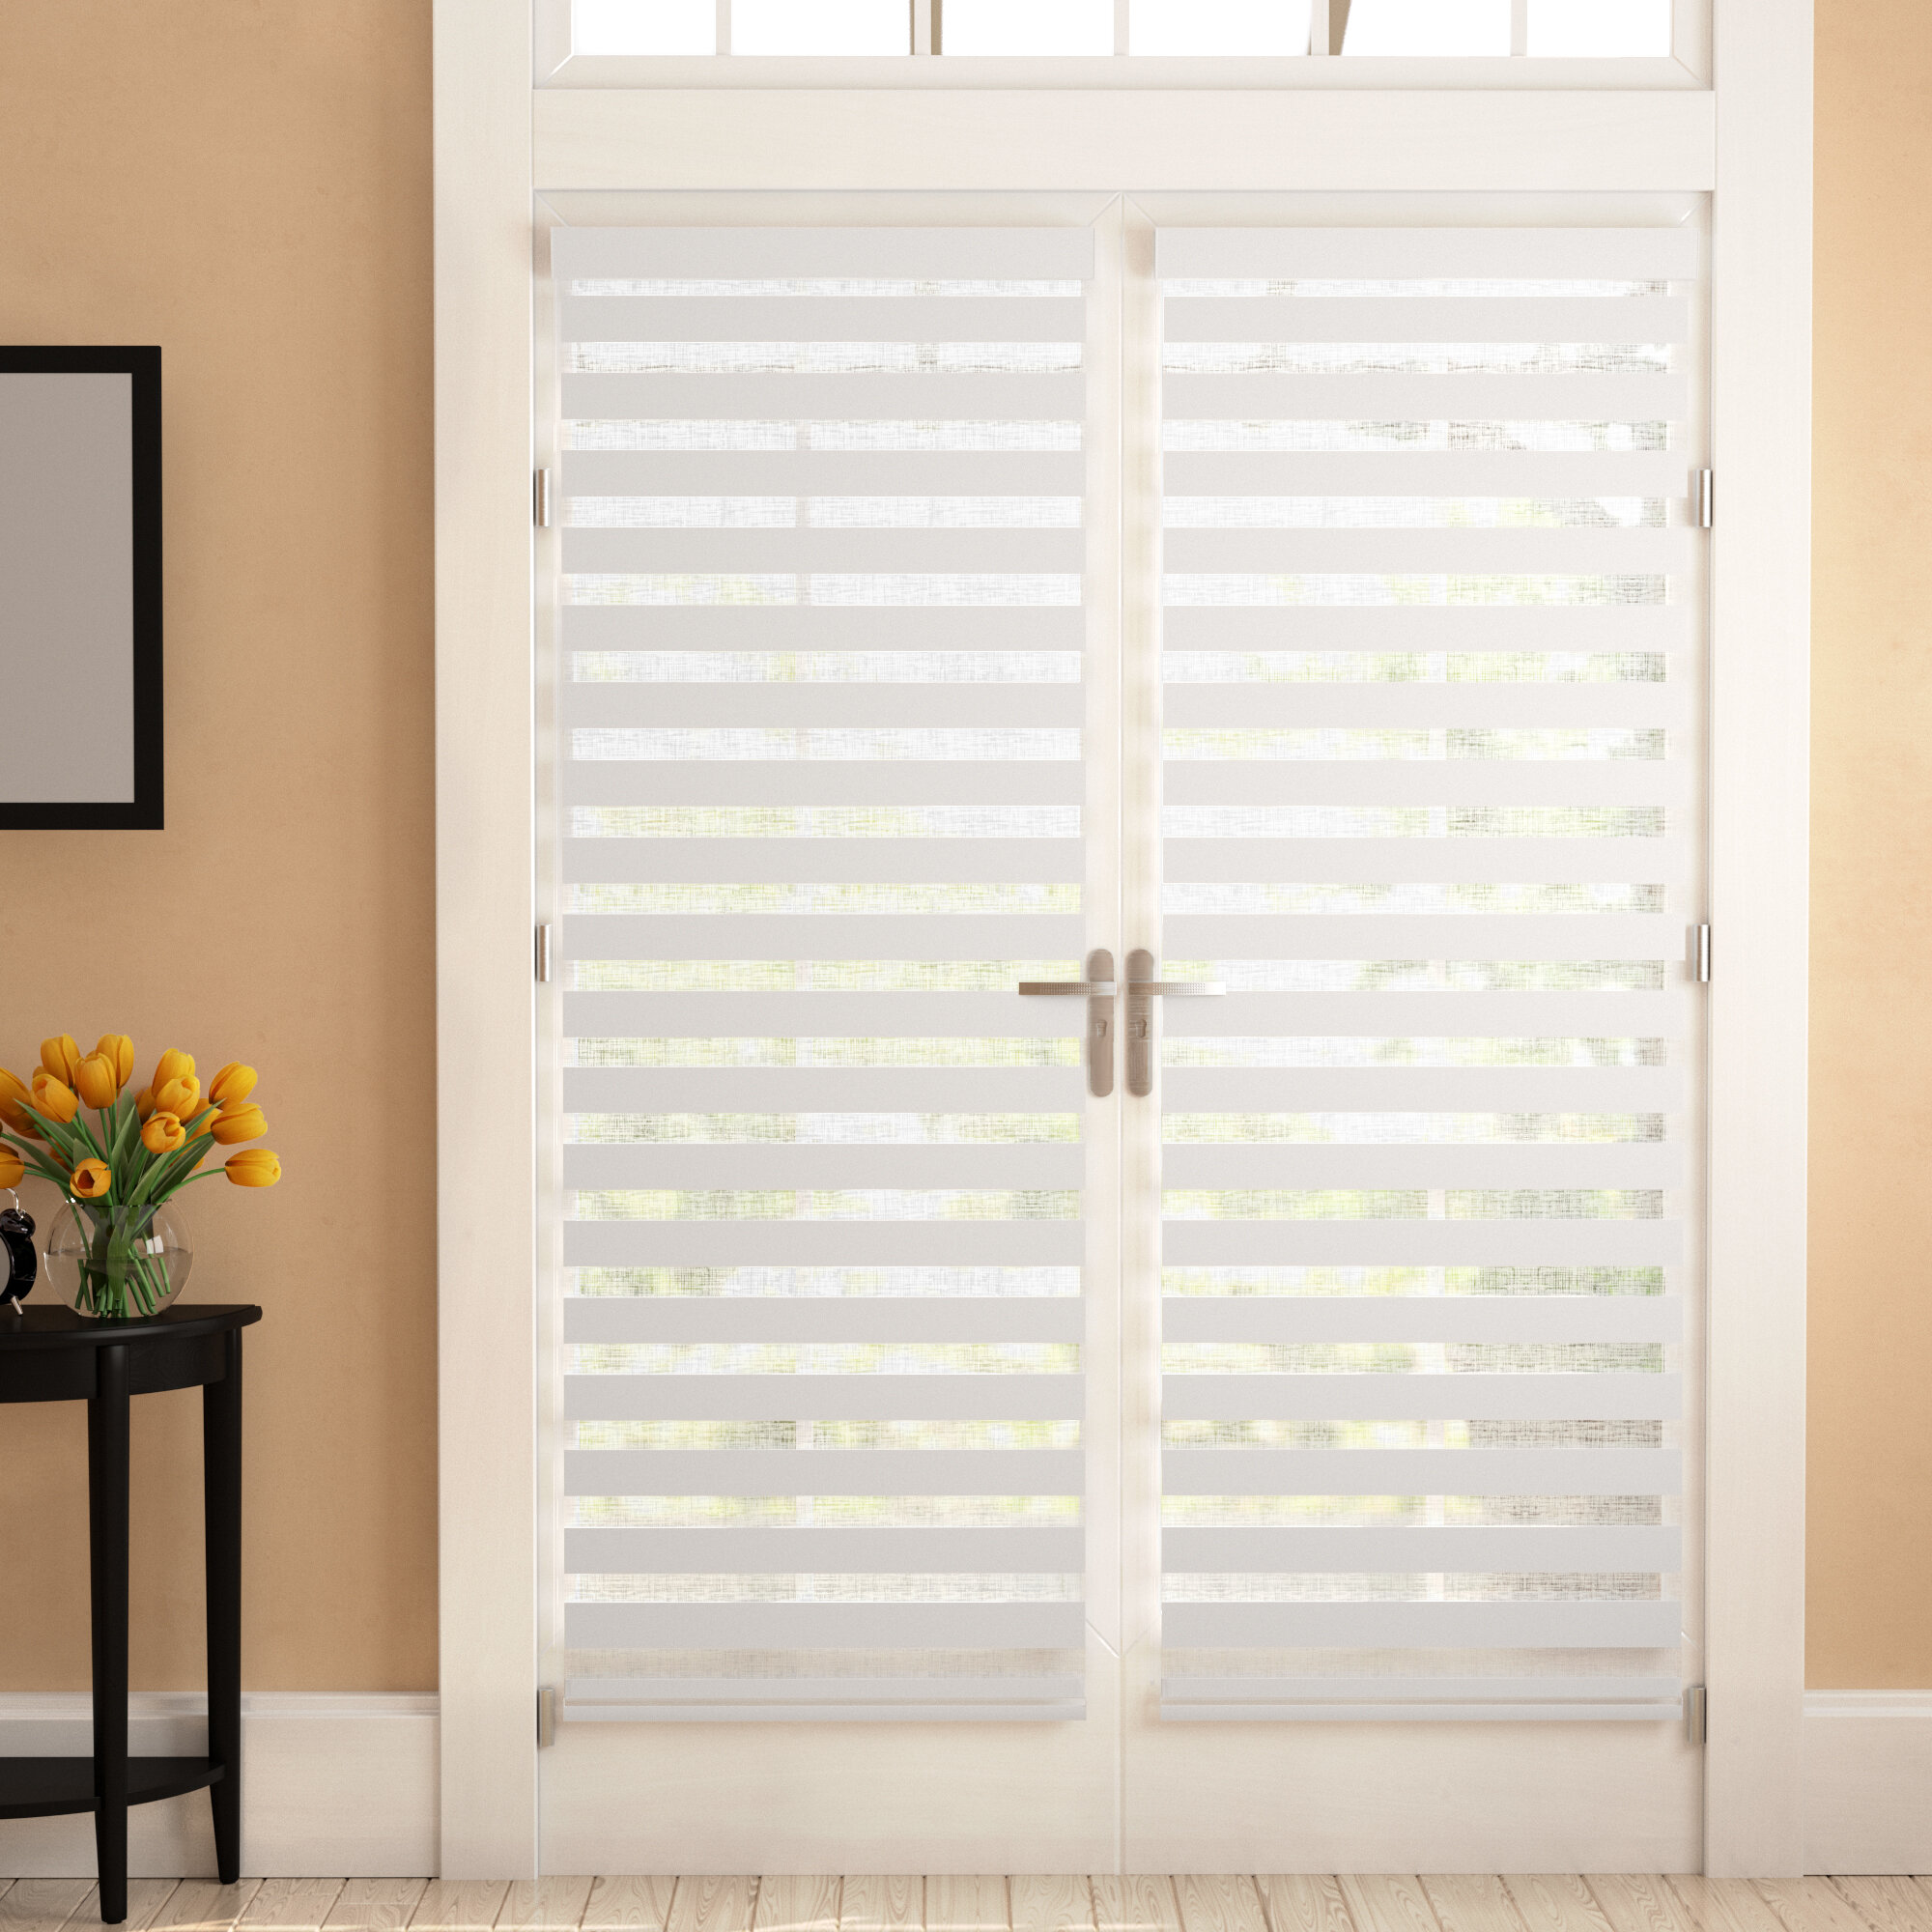 shutters shades windsor and sunrise london select drapes toronto g roomset blinds